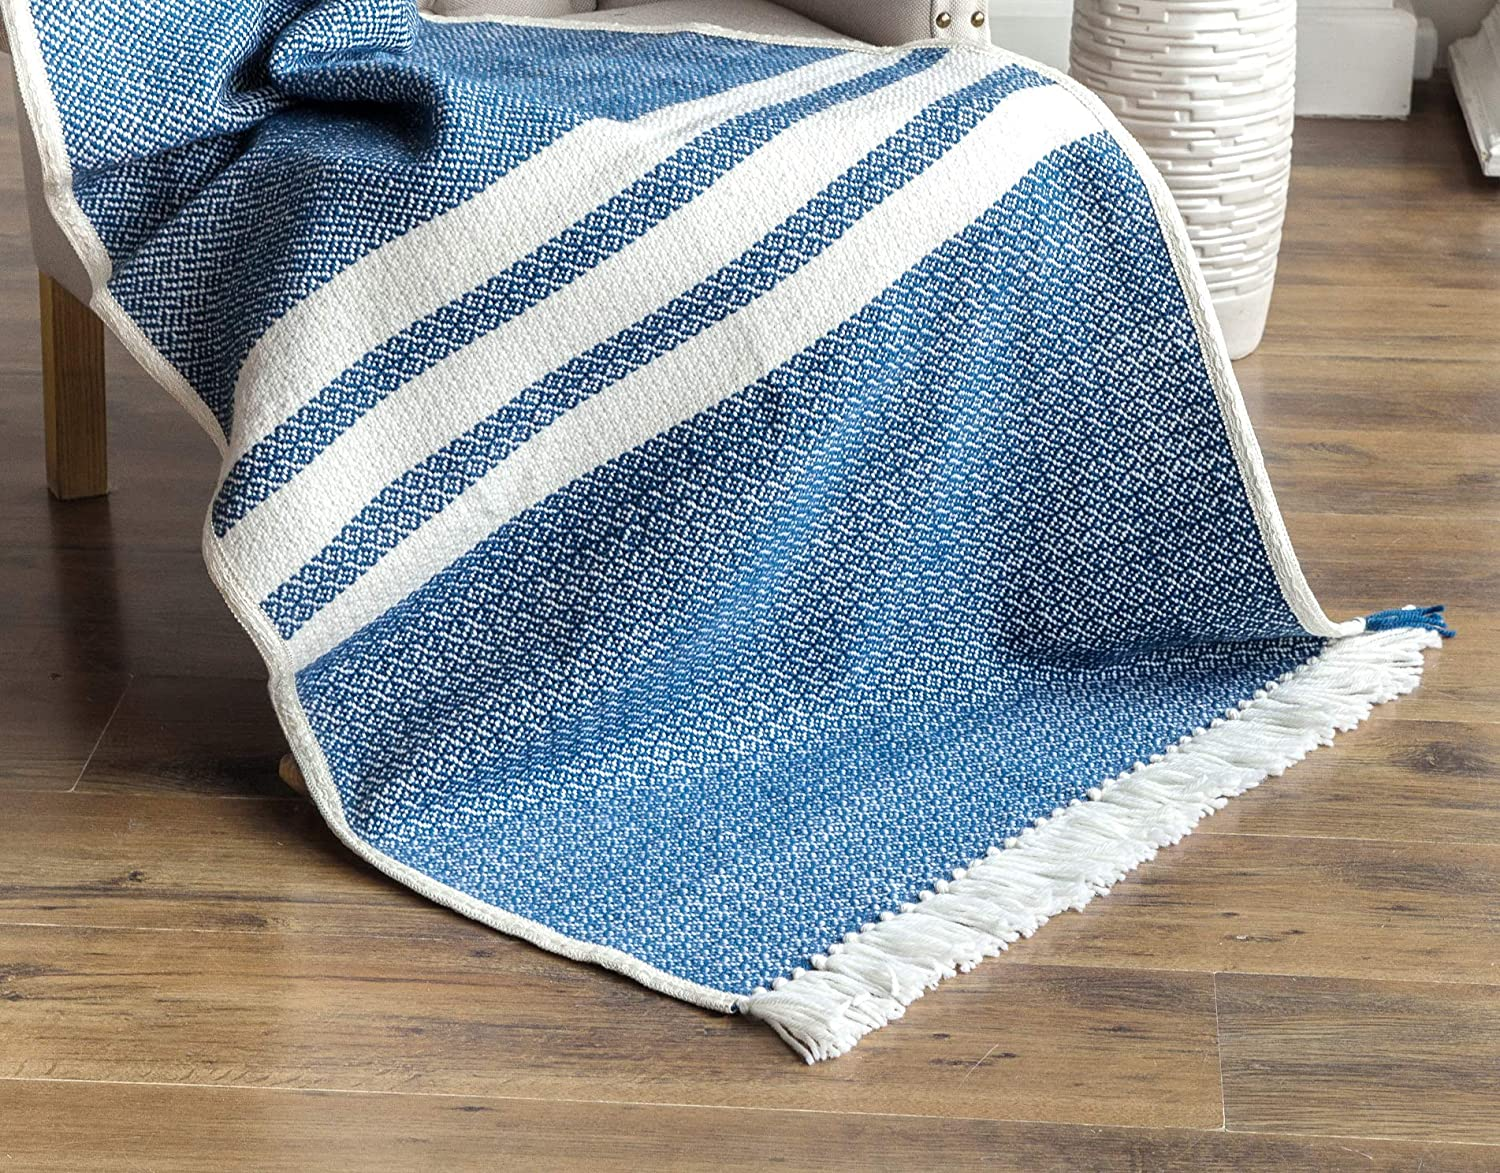 Surprising Amazon Com Wool Throw Handwoven Blanket Blue White Striped Creativecarmelina Interior Chair Design Creativecarmelinacom